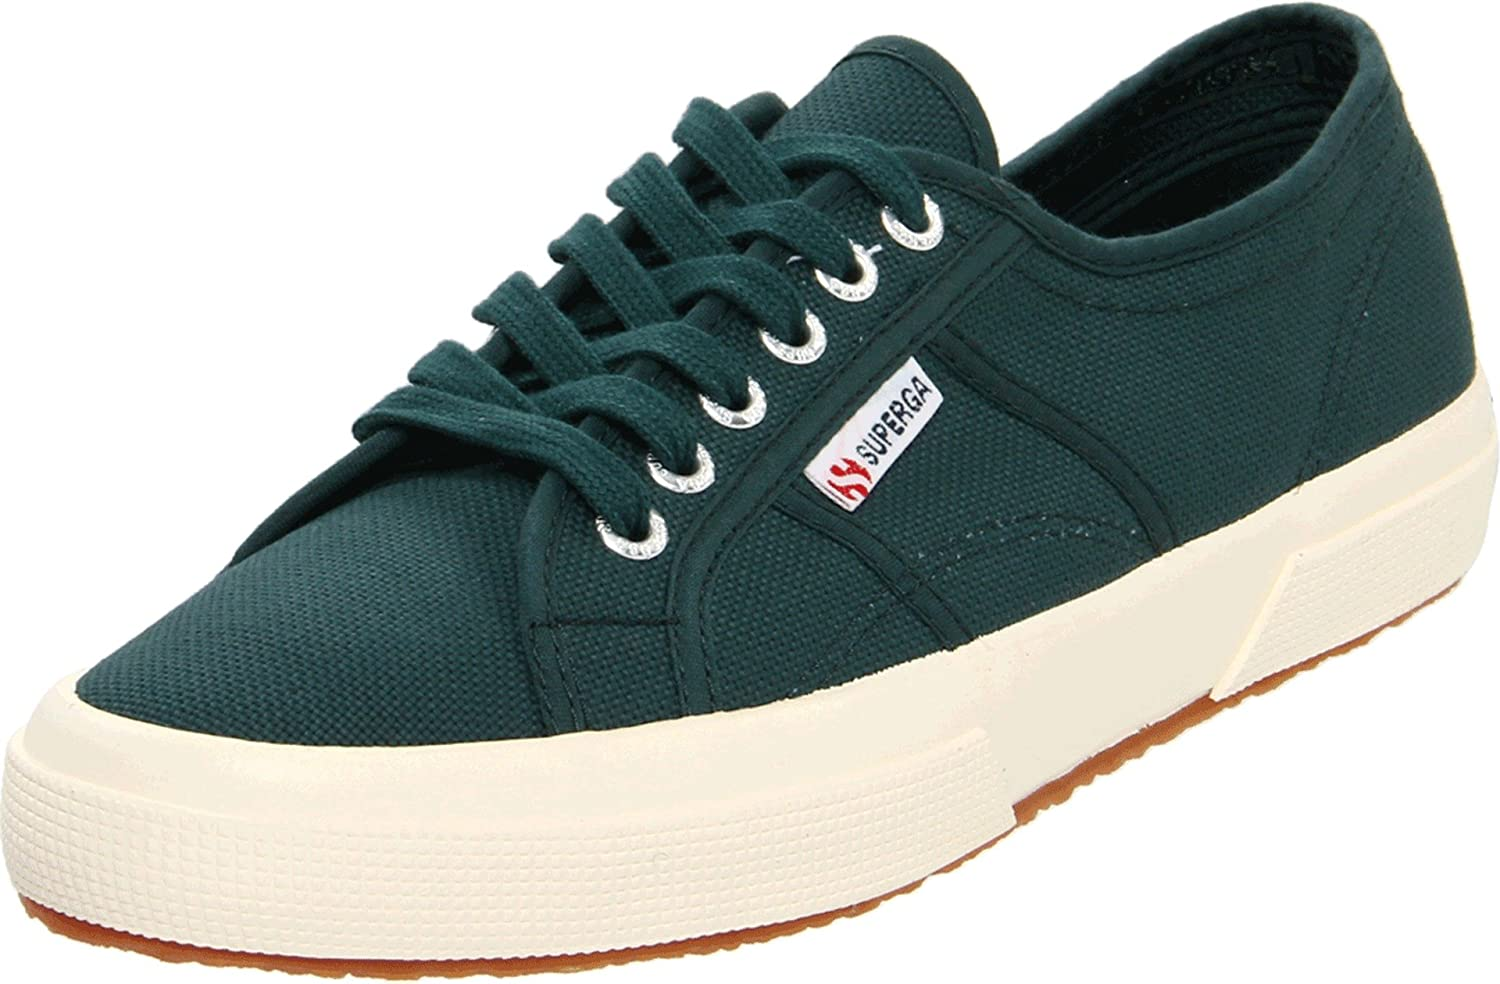 Superga 2750 Cotu Classic 2 B005VGBJGW 40  EU (7.5 M US Men's,9 M US Women's)|Green Pine